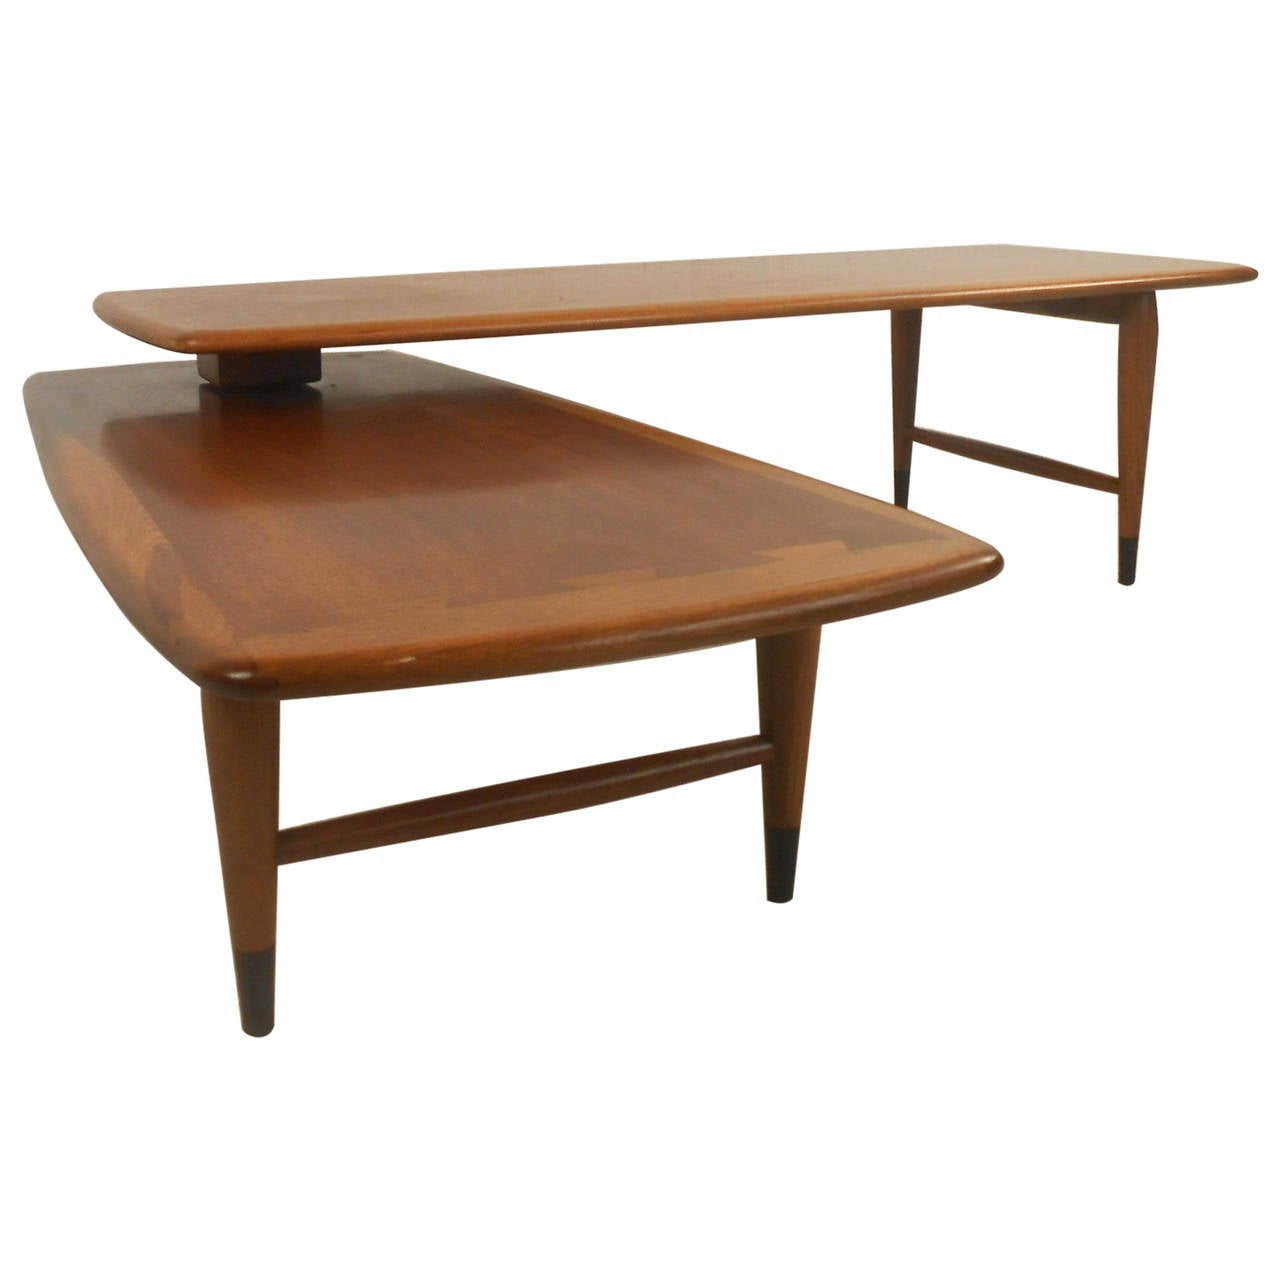 mid century modern expanding coffee table by lane for sale at 1stdibs. Black Bedroom Furniture Sets. Home Design Ideas